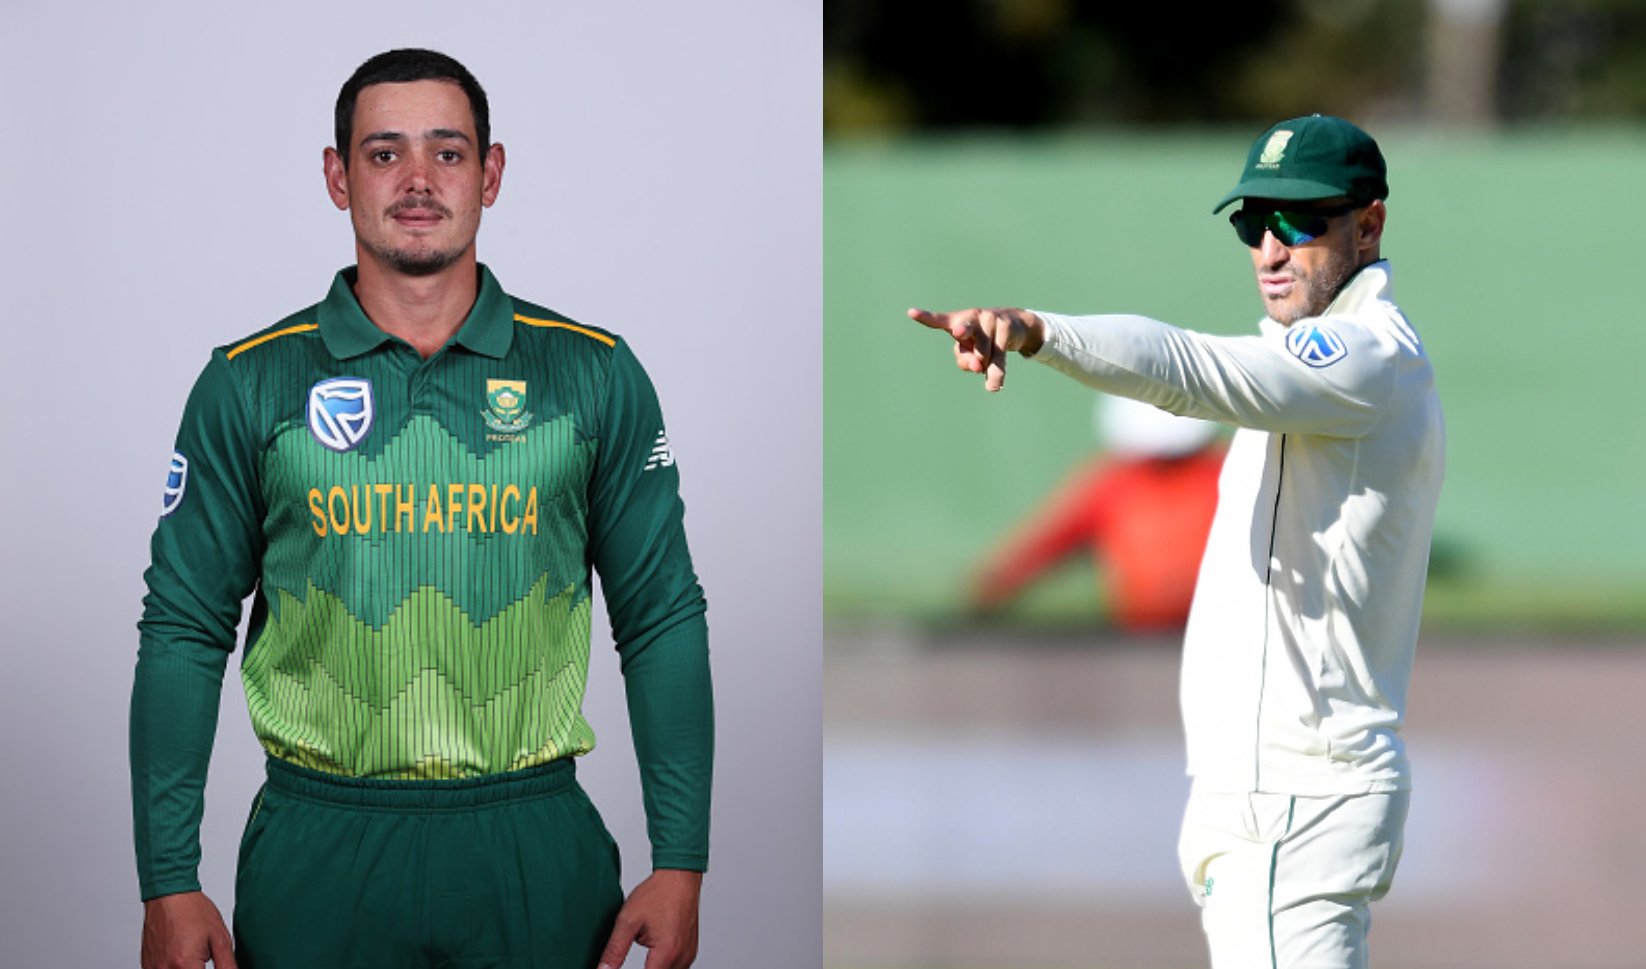 T20I skipper Quinton de Kock and Test skipper Faf du Plessis | Getty